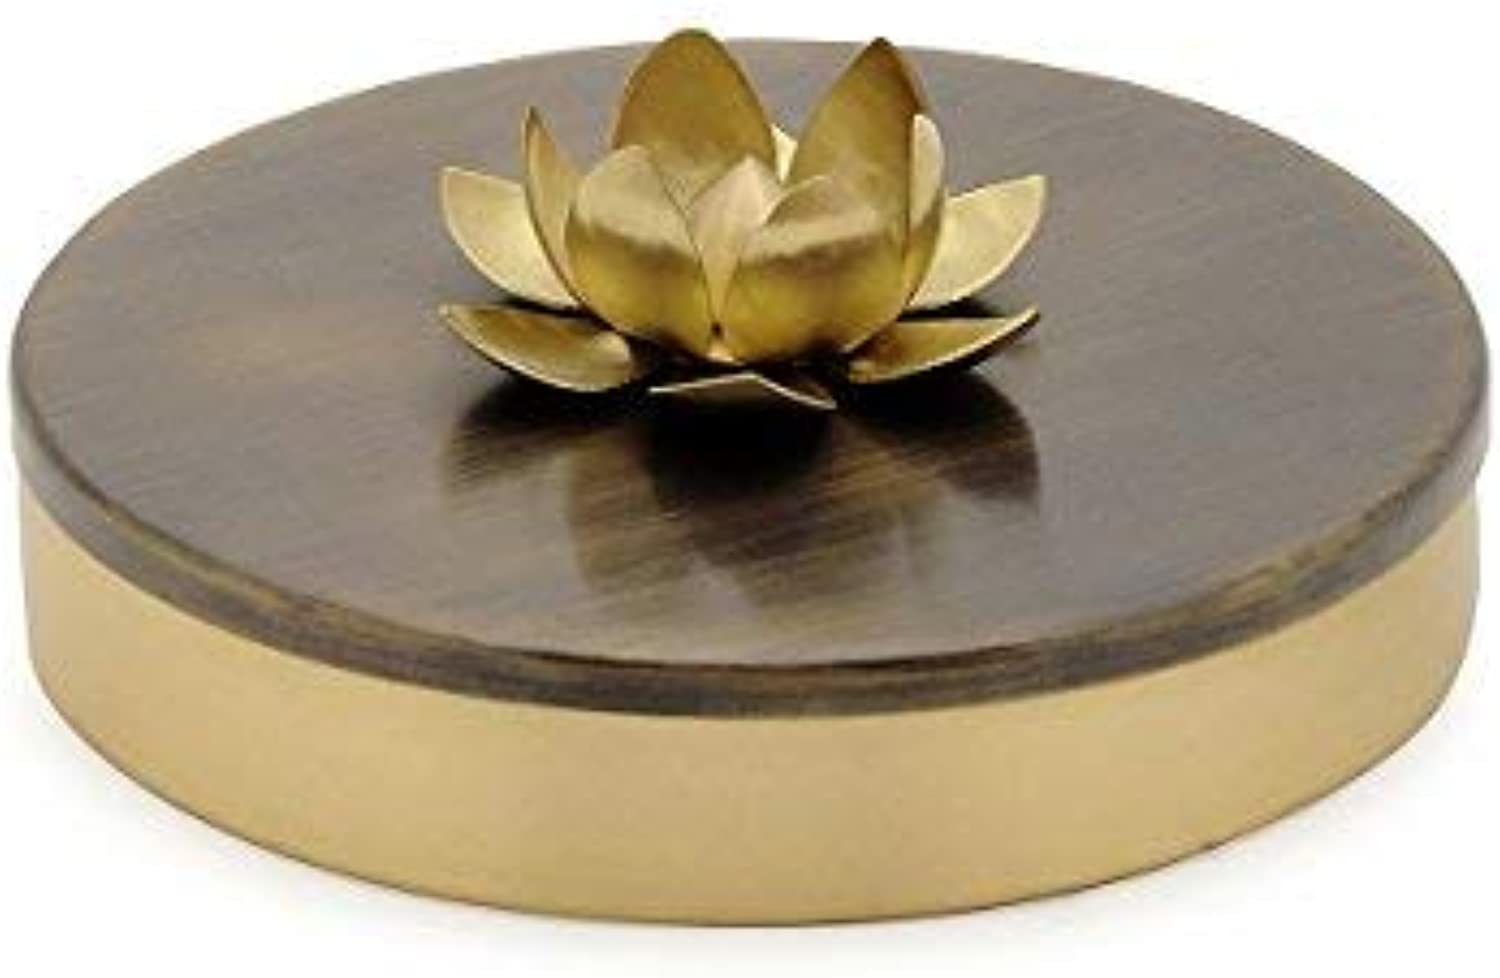 Samagridan - Handcrafted Brass Spice Organizer with Lotus, Spice Condiments Container, Multi-purpose Utility, Perfect House Warming Item & Bridal